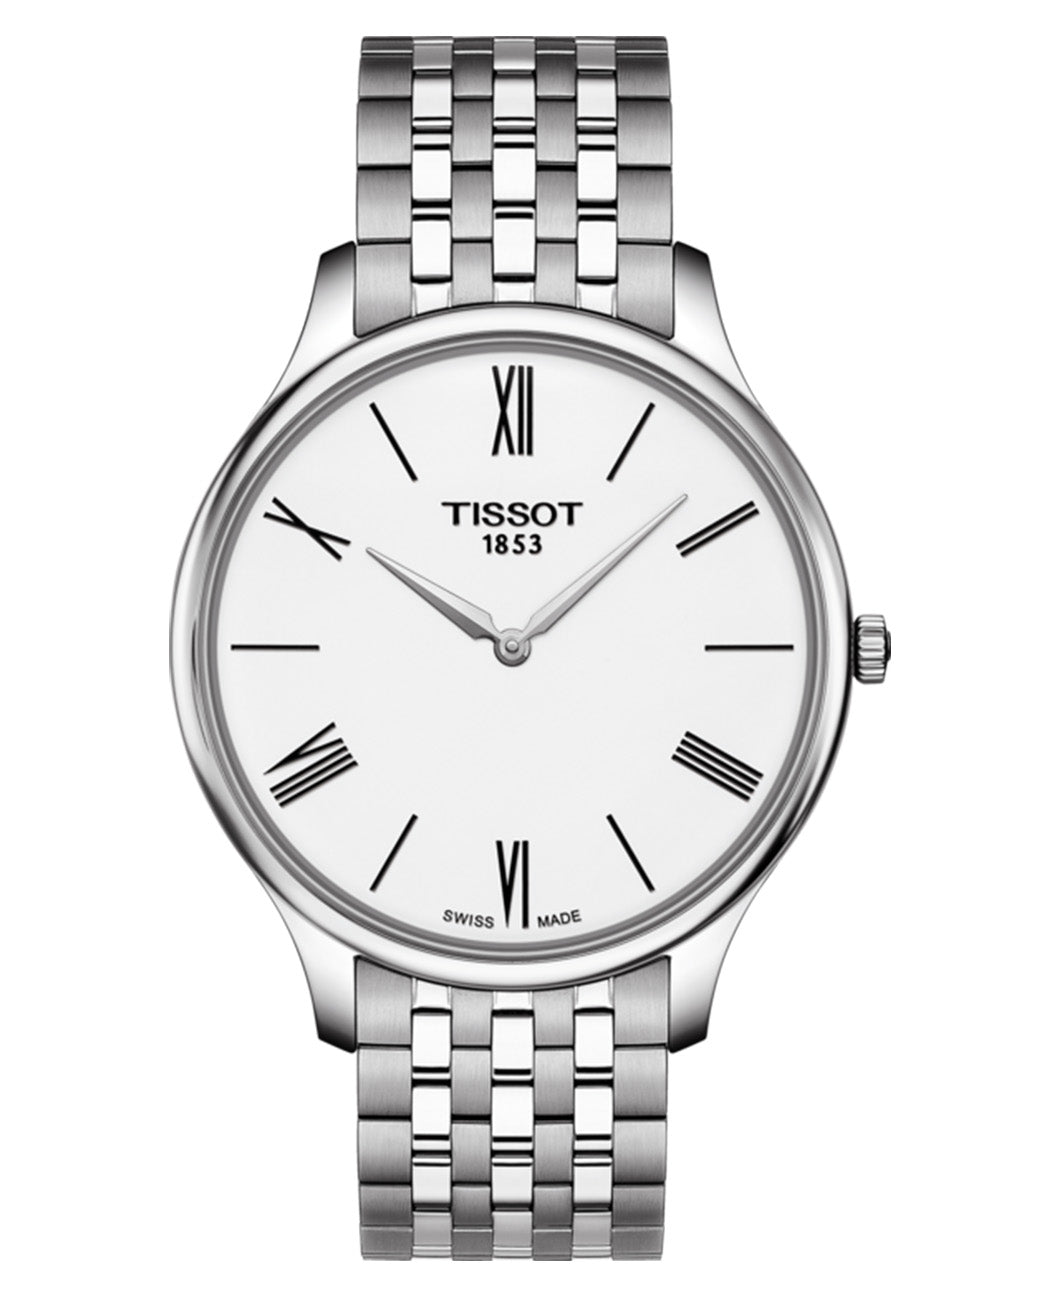 Tissot Tradition 5.5 Gents Watch